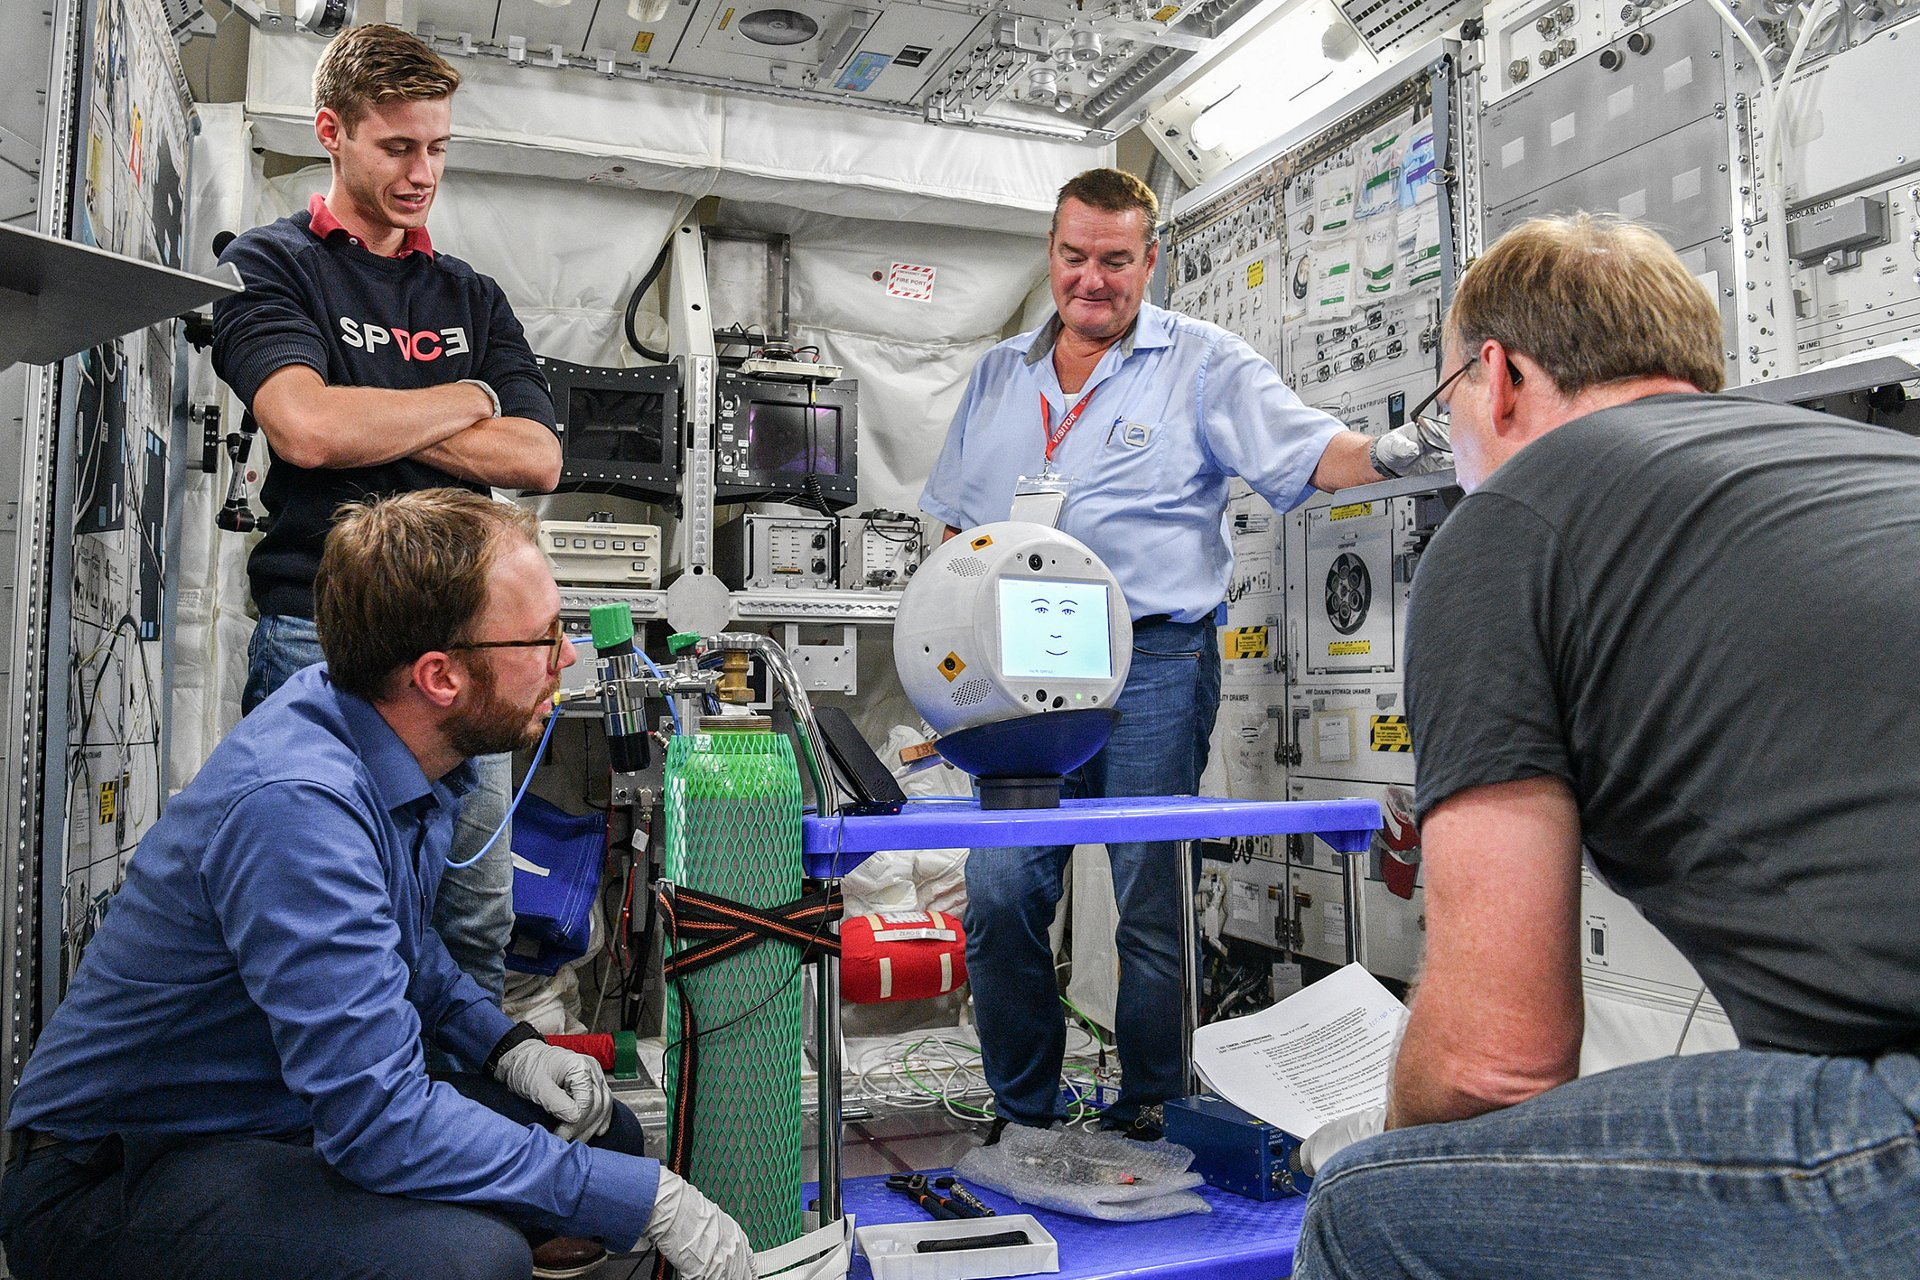 CIMON-2 under test:  (from left) Christian Karrasch (DLR), Julien Doche (Airbus), Reinhard Schönfelder (Airbus) and Bernd Rattenbacher (BIOTESC). 